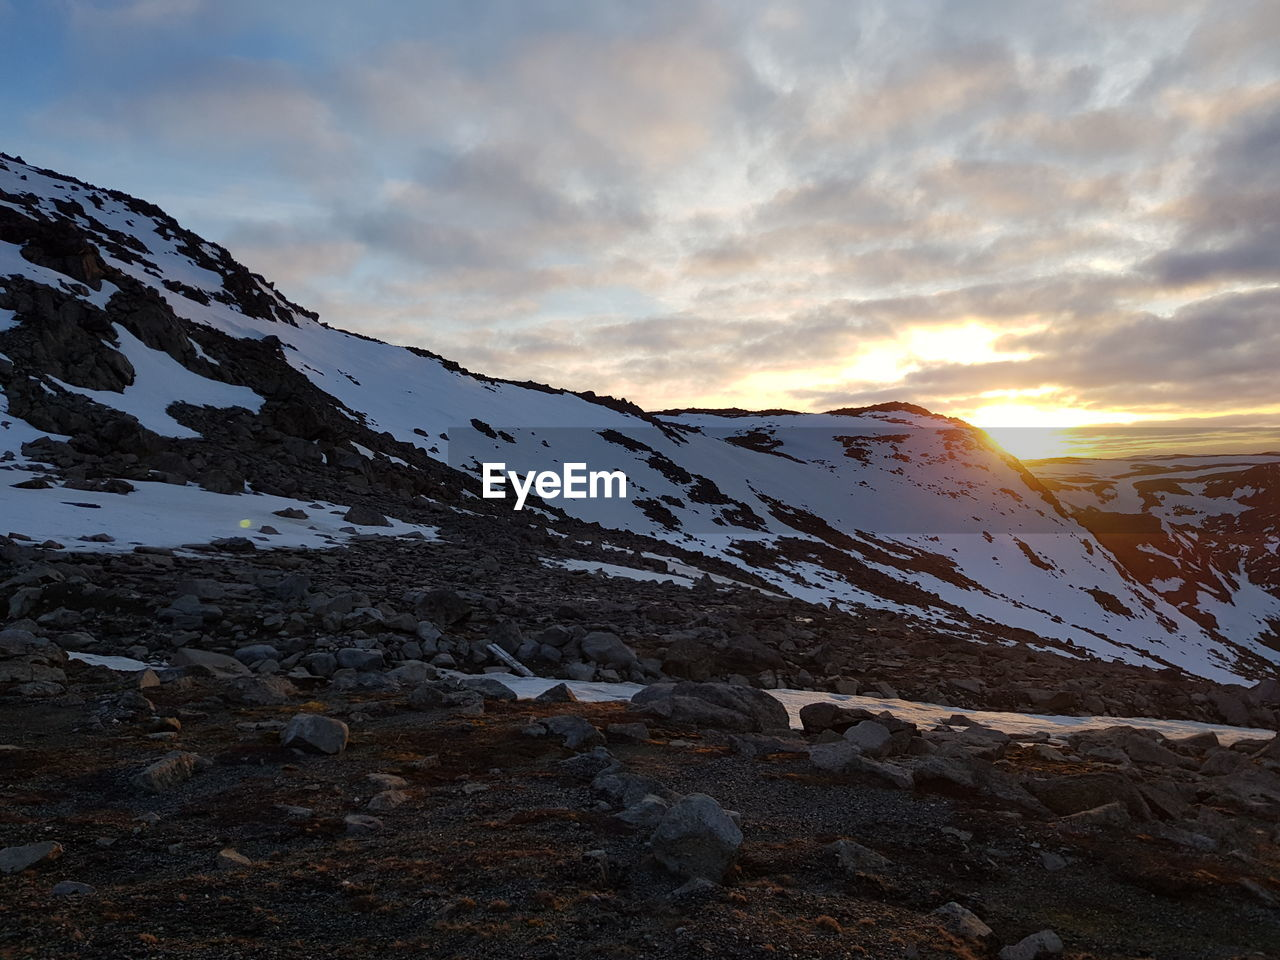 sky, beauty in nature, cold temperature, scenics - nature, winter, cloud - sky, mountain, tranquility, tranquil scene, snow, snowcapped mountain, environment, non-urban scene, nature, mountain range, sunset, landscape, idyllic, rock, no people, outdoors, mountain peak, formation